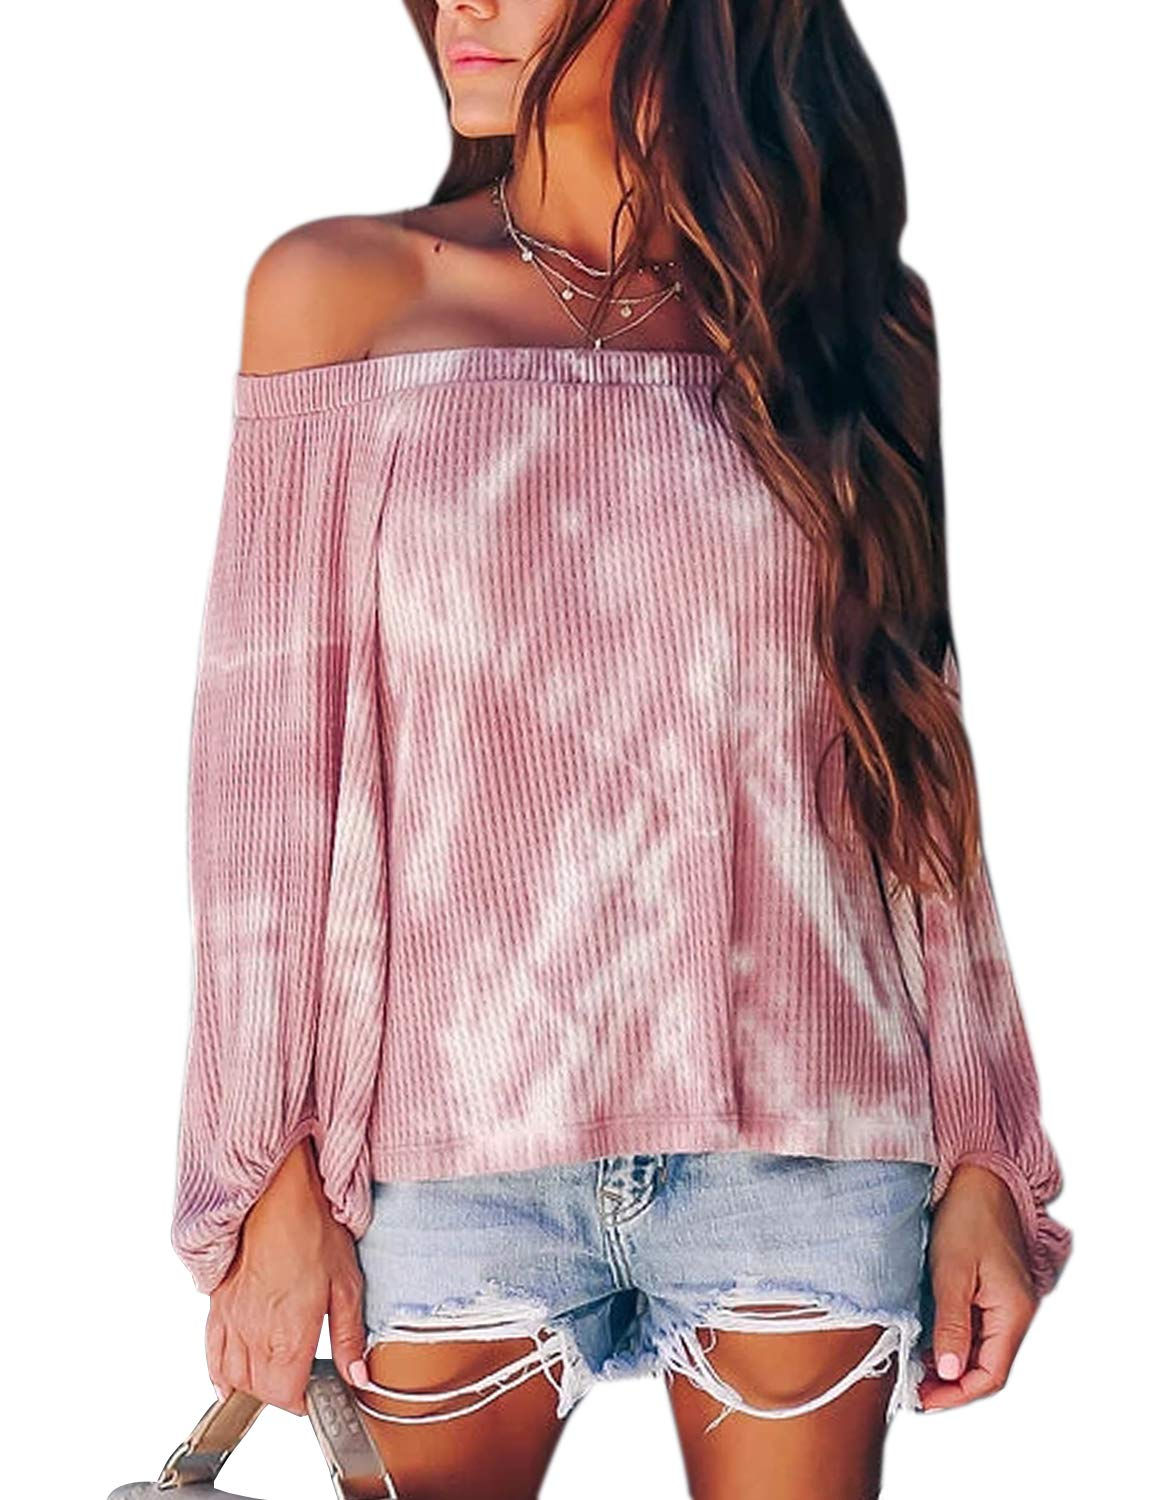 BMJL Women's Casual Long Sleeve Tie Dye Shirt Off Shoulder Tops Cute Plus Size Blouse(Medium,Tie dye)